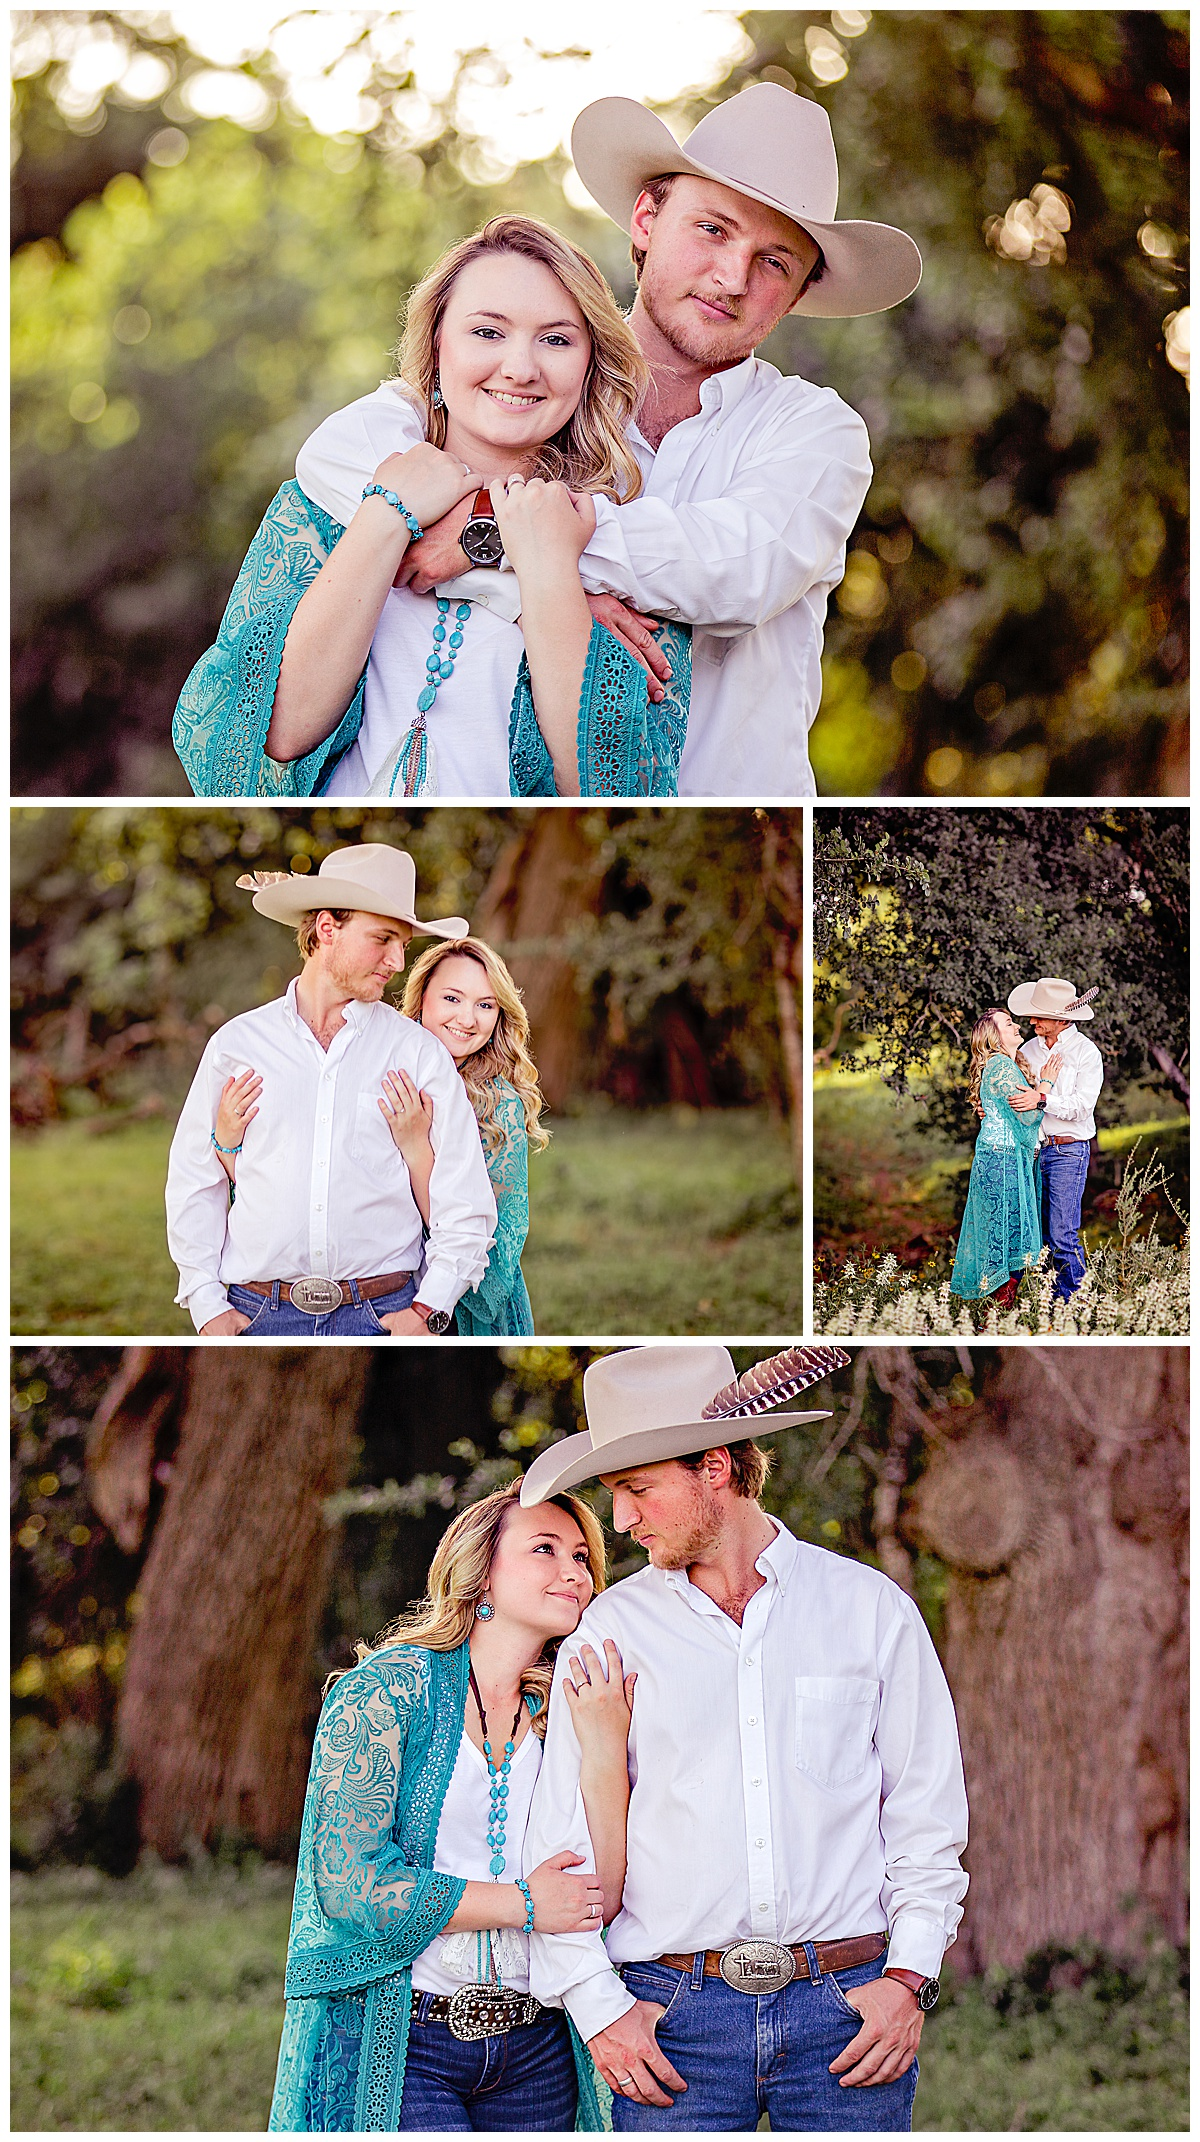 Rustic-Engagement-Session-Horse-Texas-Sunset-Carly-Barton-Photography_0012.jpg